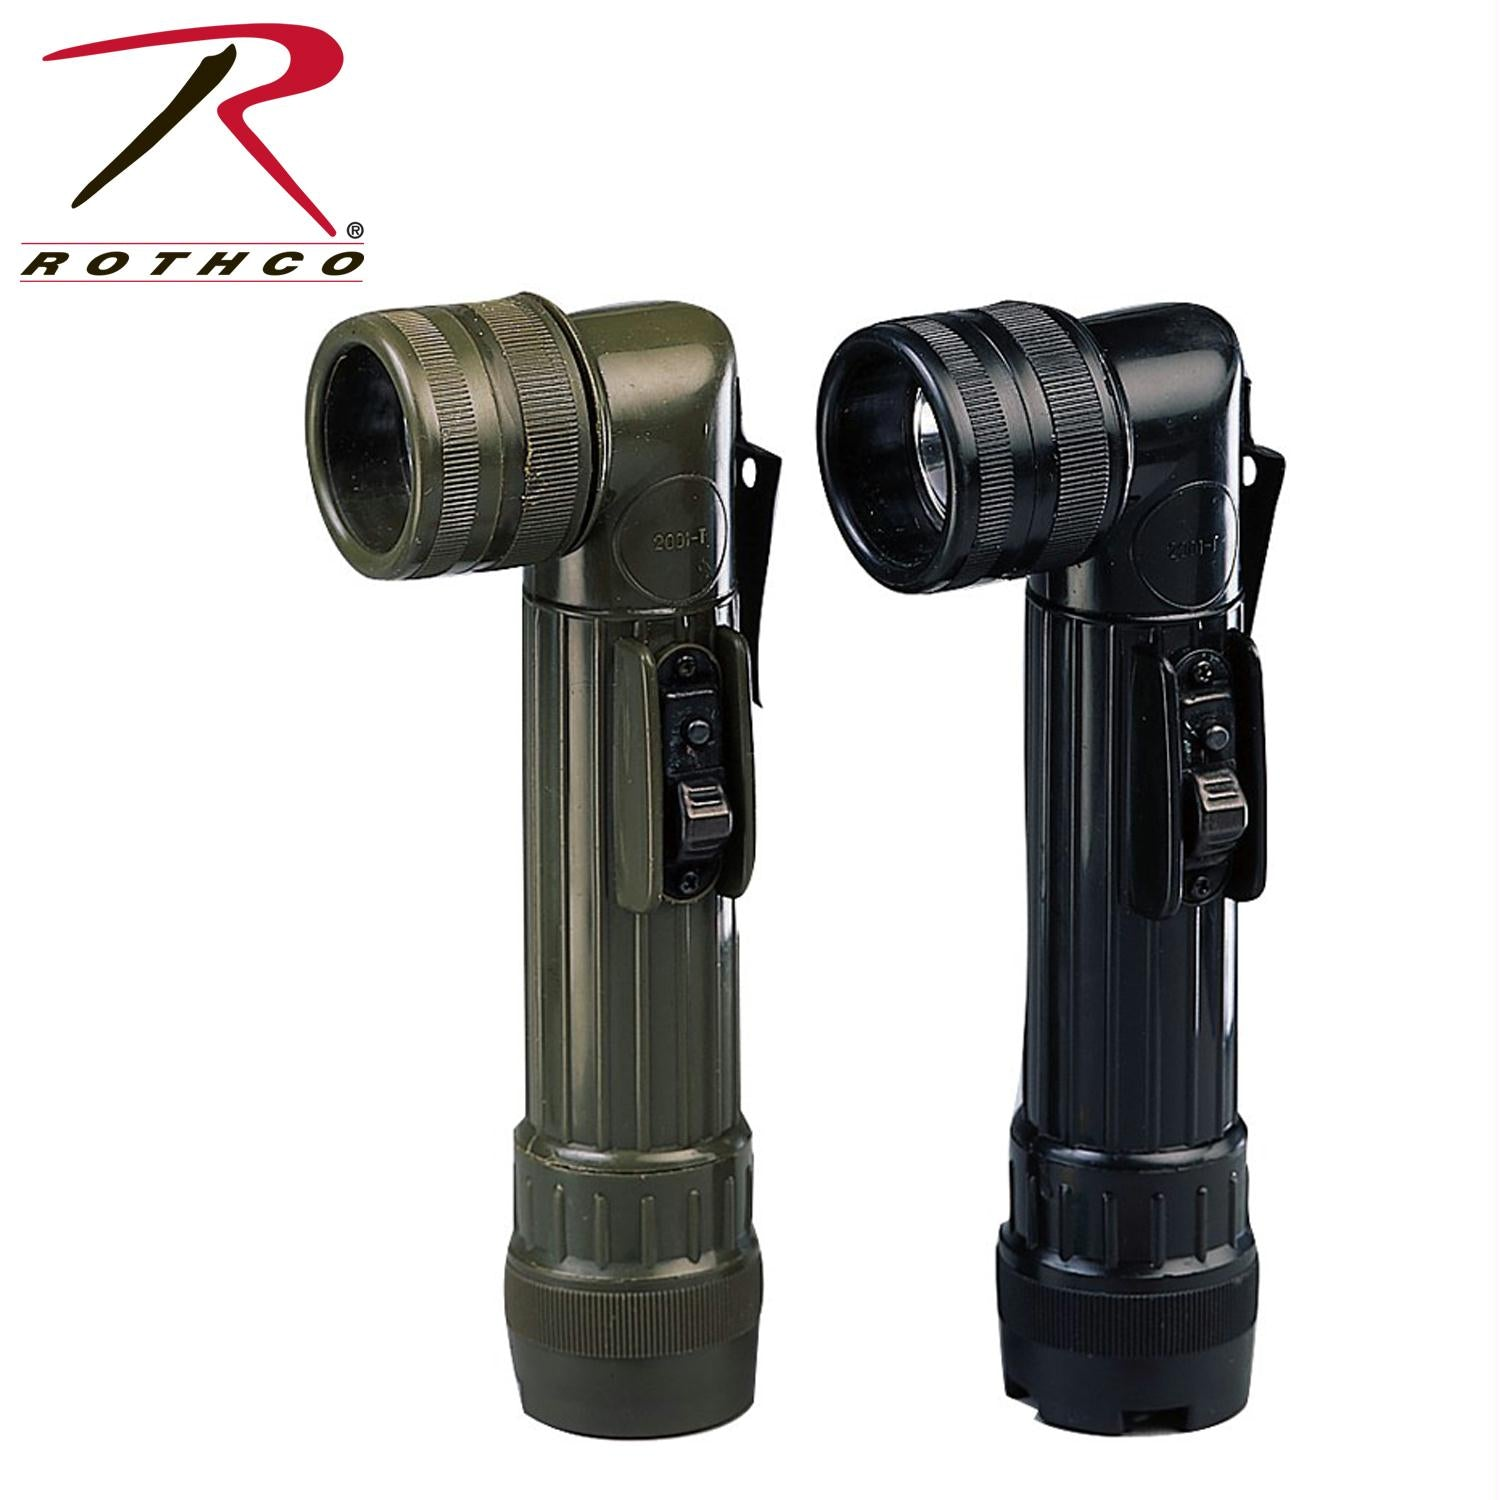 Rothco Army Style C-Cell Flashlights - Black